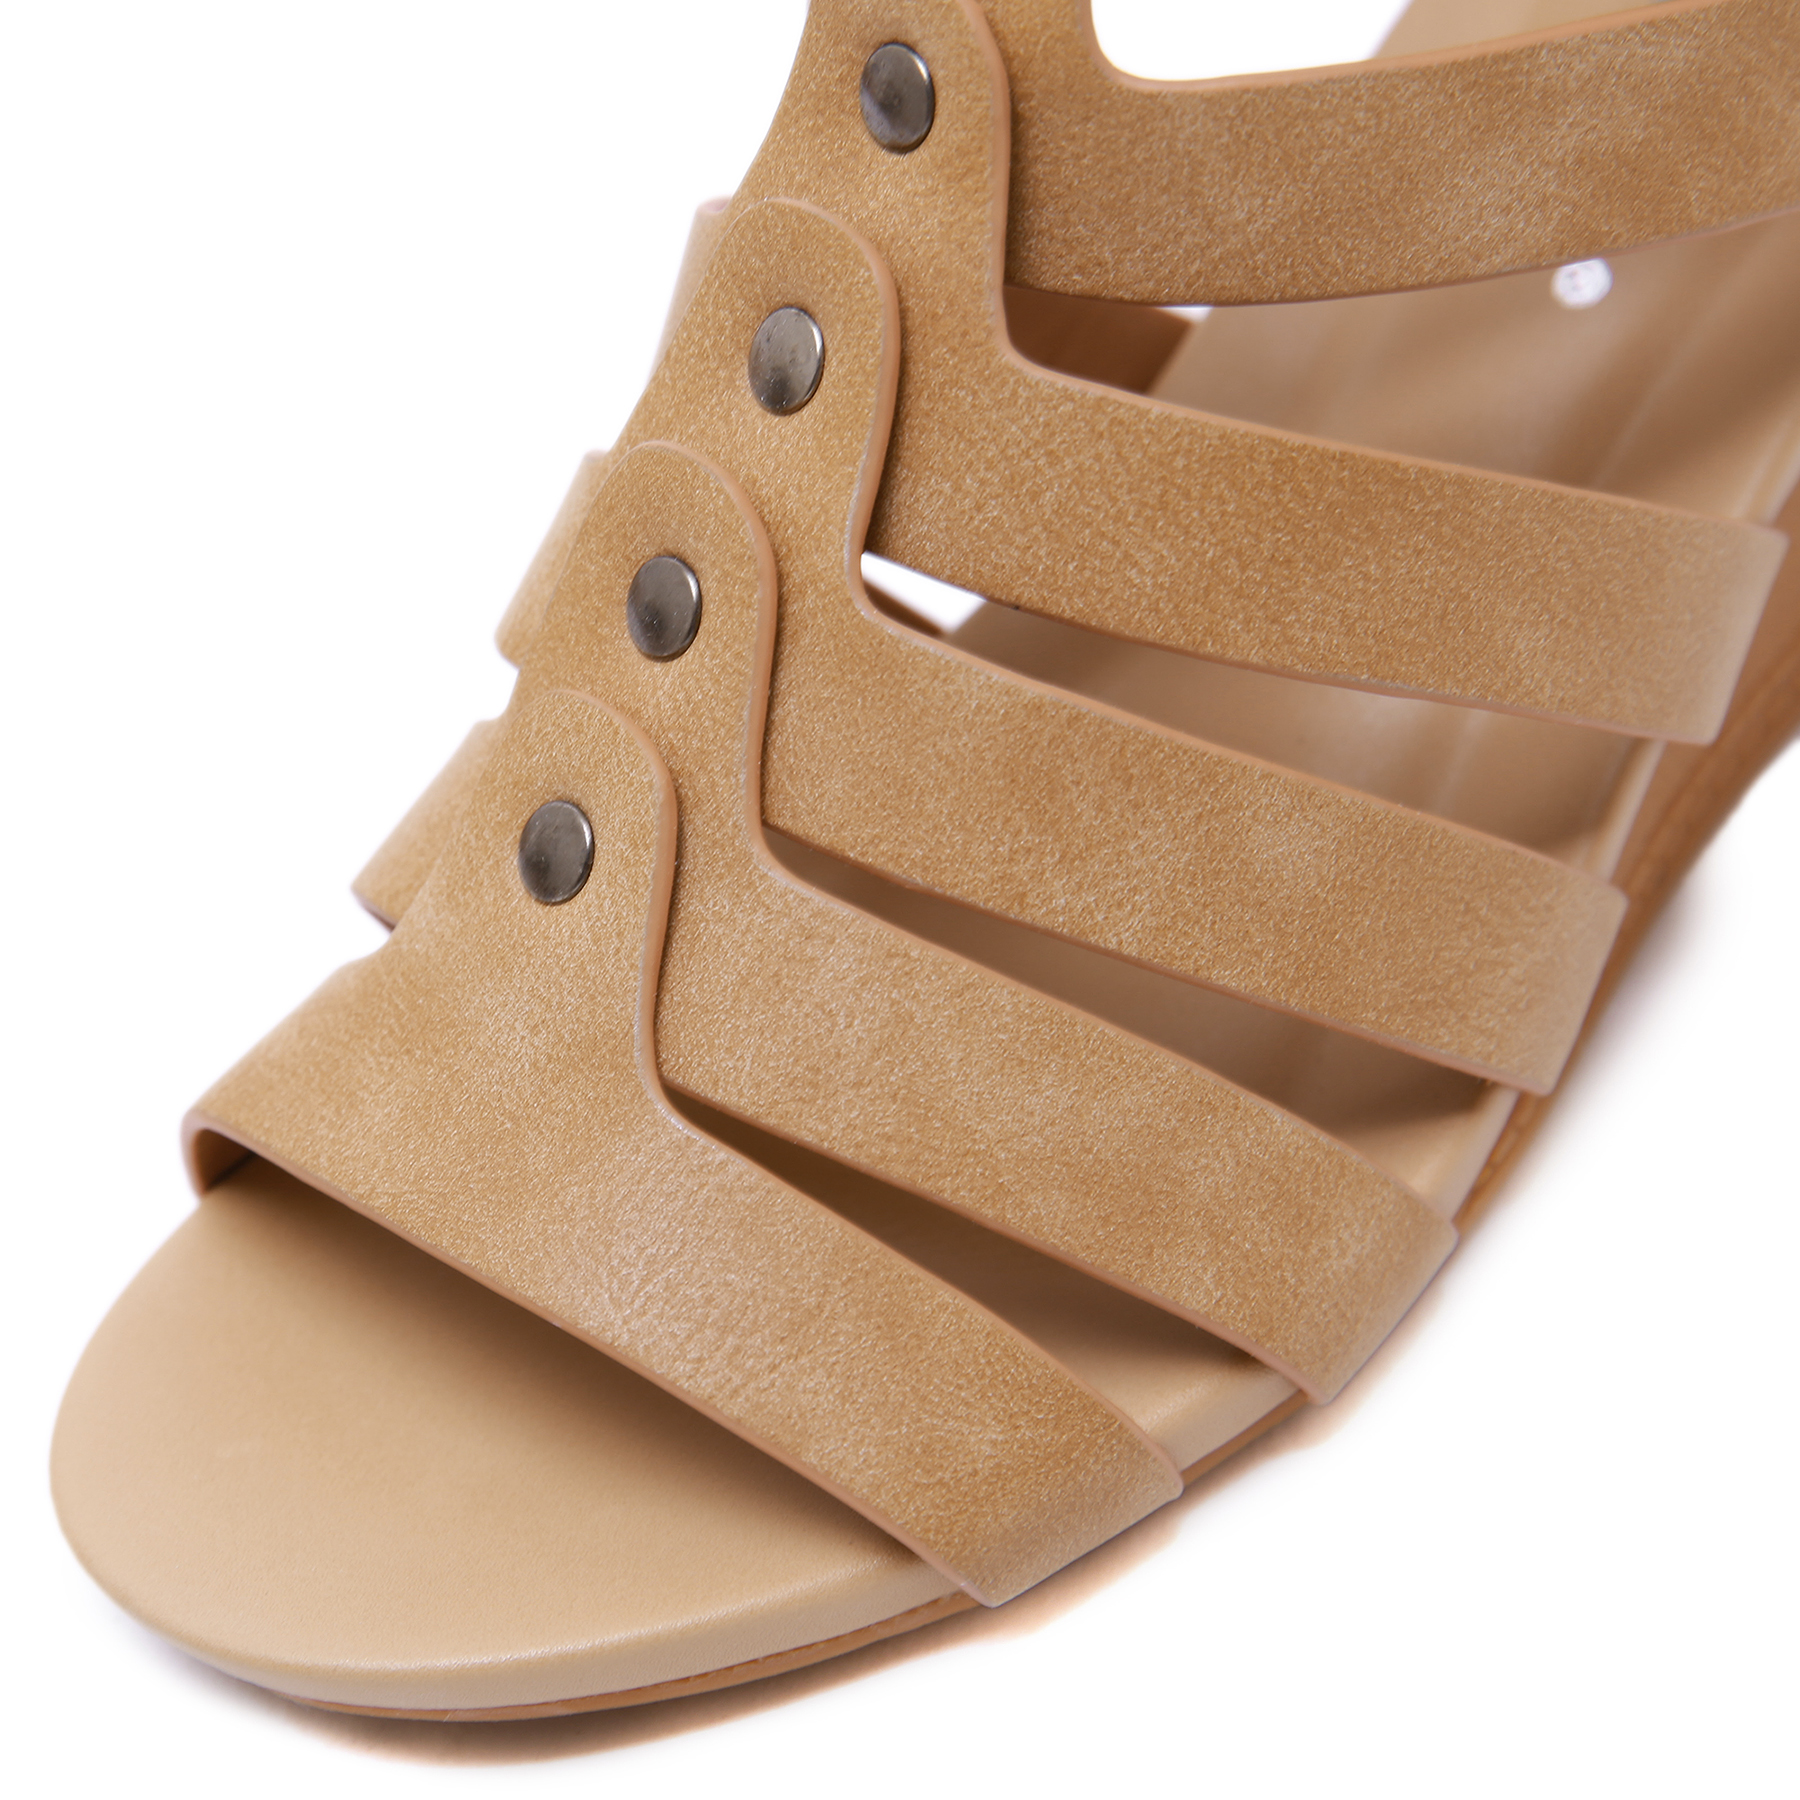 LAASIMI Women Sandals Gladiator Wedge Zip Fashion Summer Sandals Women Shoes Casual Slip On Shoes Woman Ladies Slippers 2019 in Middle Heels from Shoes